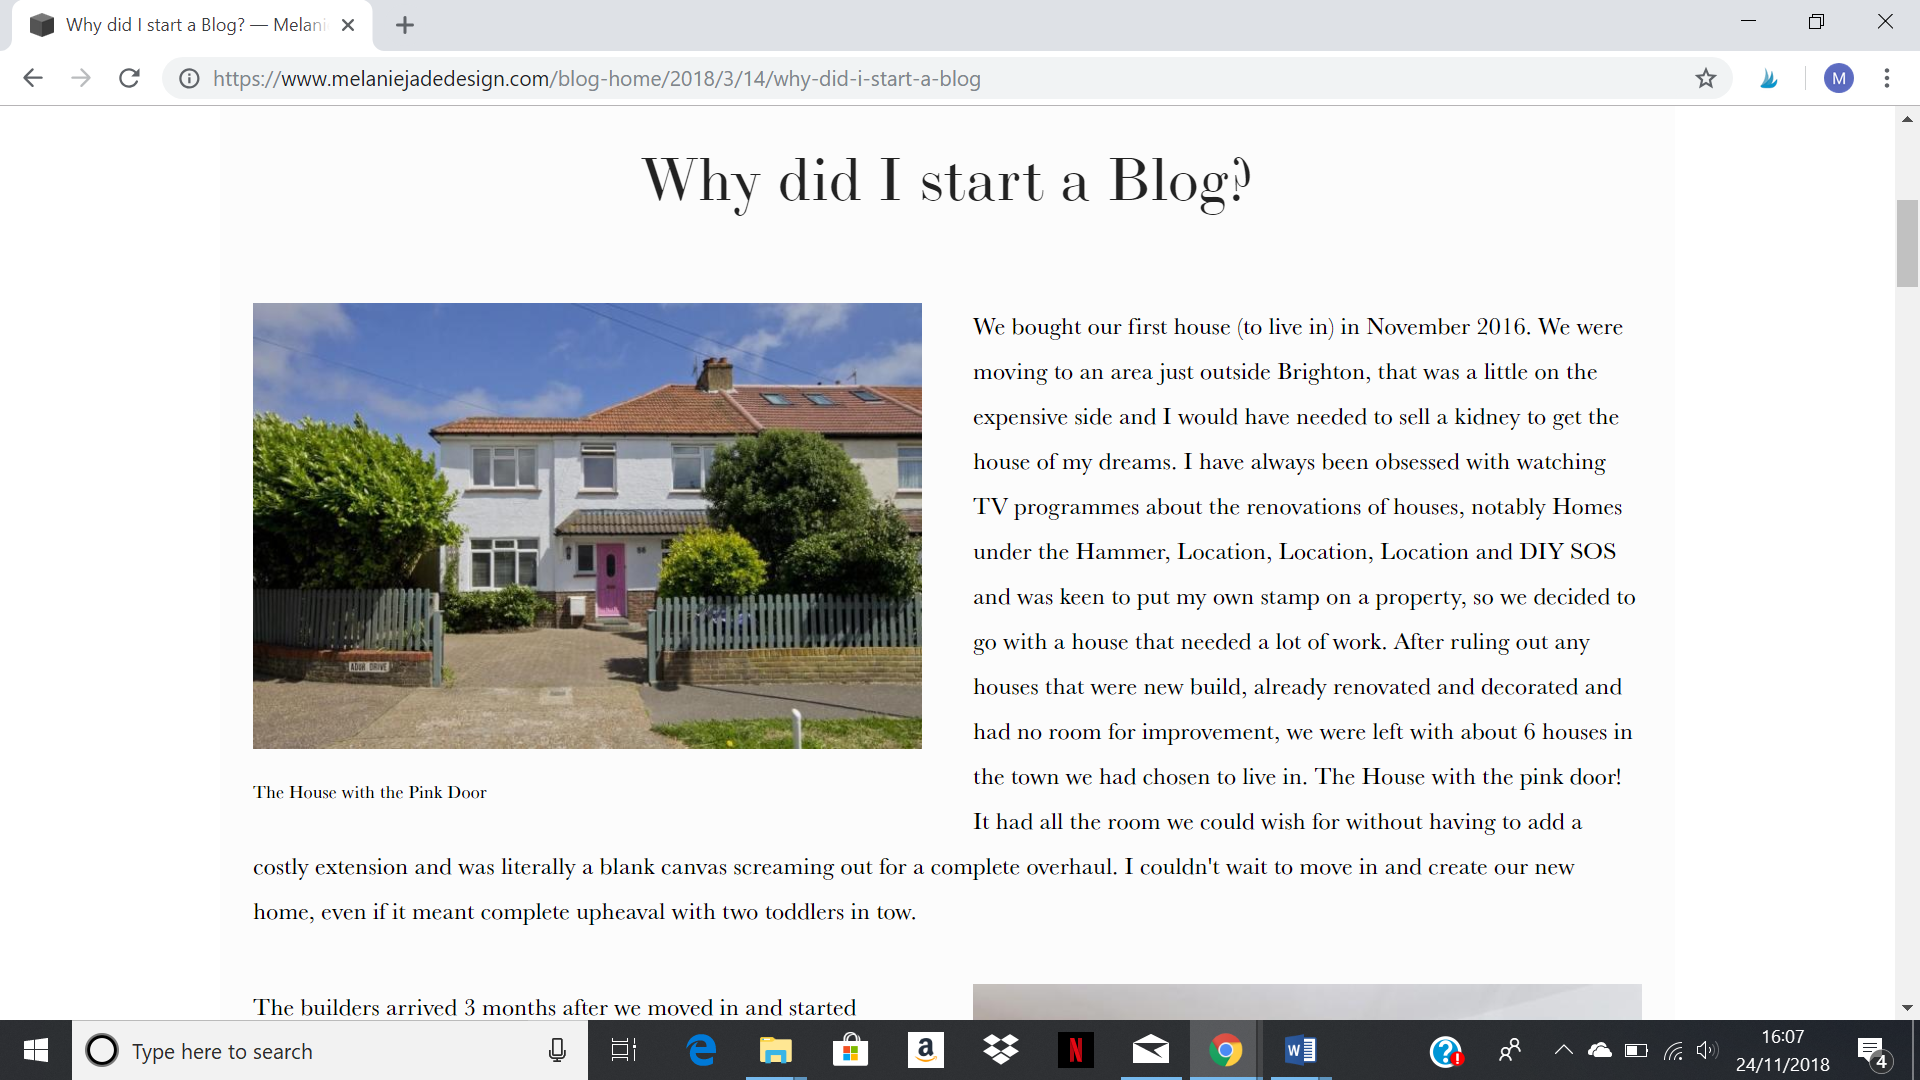 My very first blog post, I think about 10 people read it!